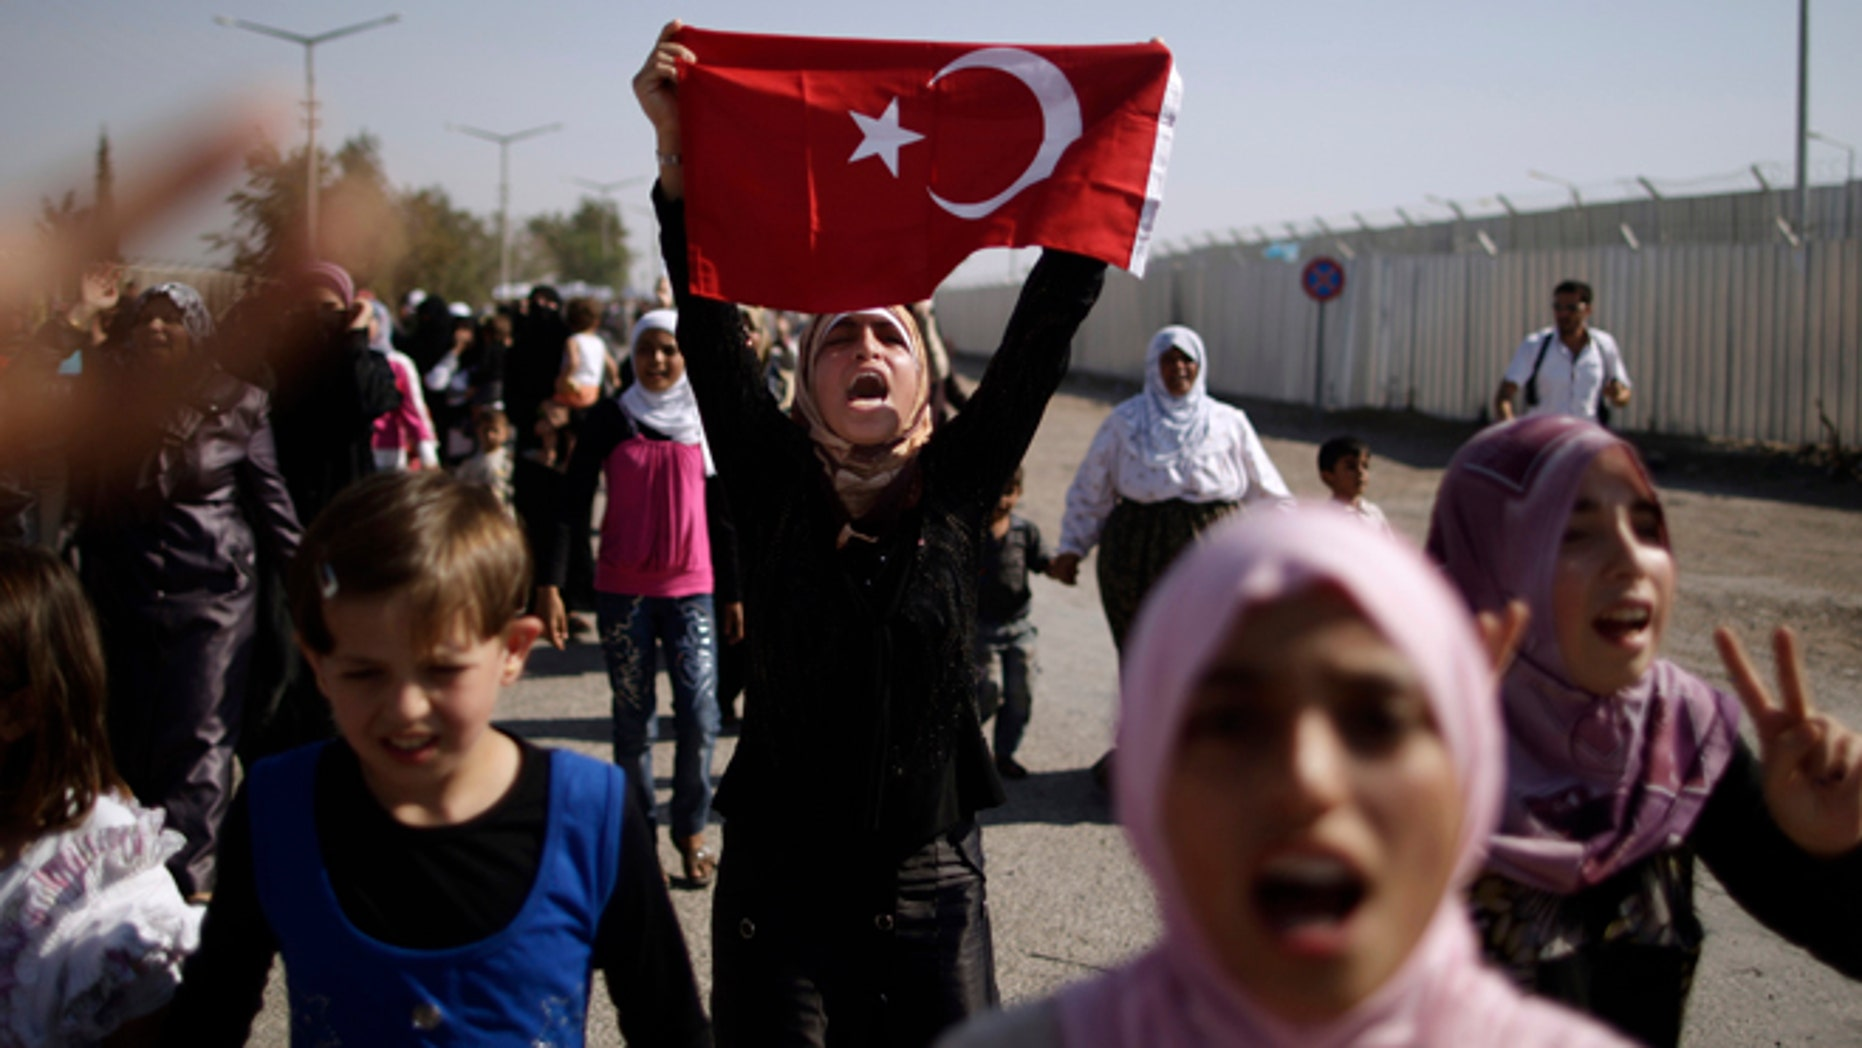 August 28, 2012: Syrians, who fled their homes due to fighting between the Syrian army and the rebels, shout slogans as they march toward the Turkish side of the border, during a protest asking the Turkish government to let them enter to their refugee camps, at the Bab Al-Salameh border crossing, near the Syrian town of Azaz.